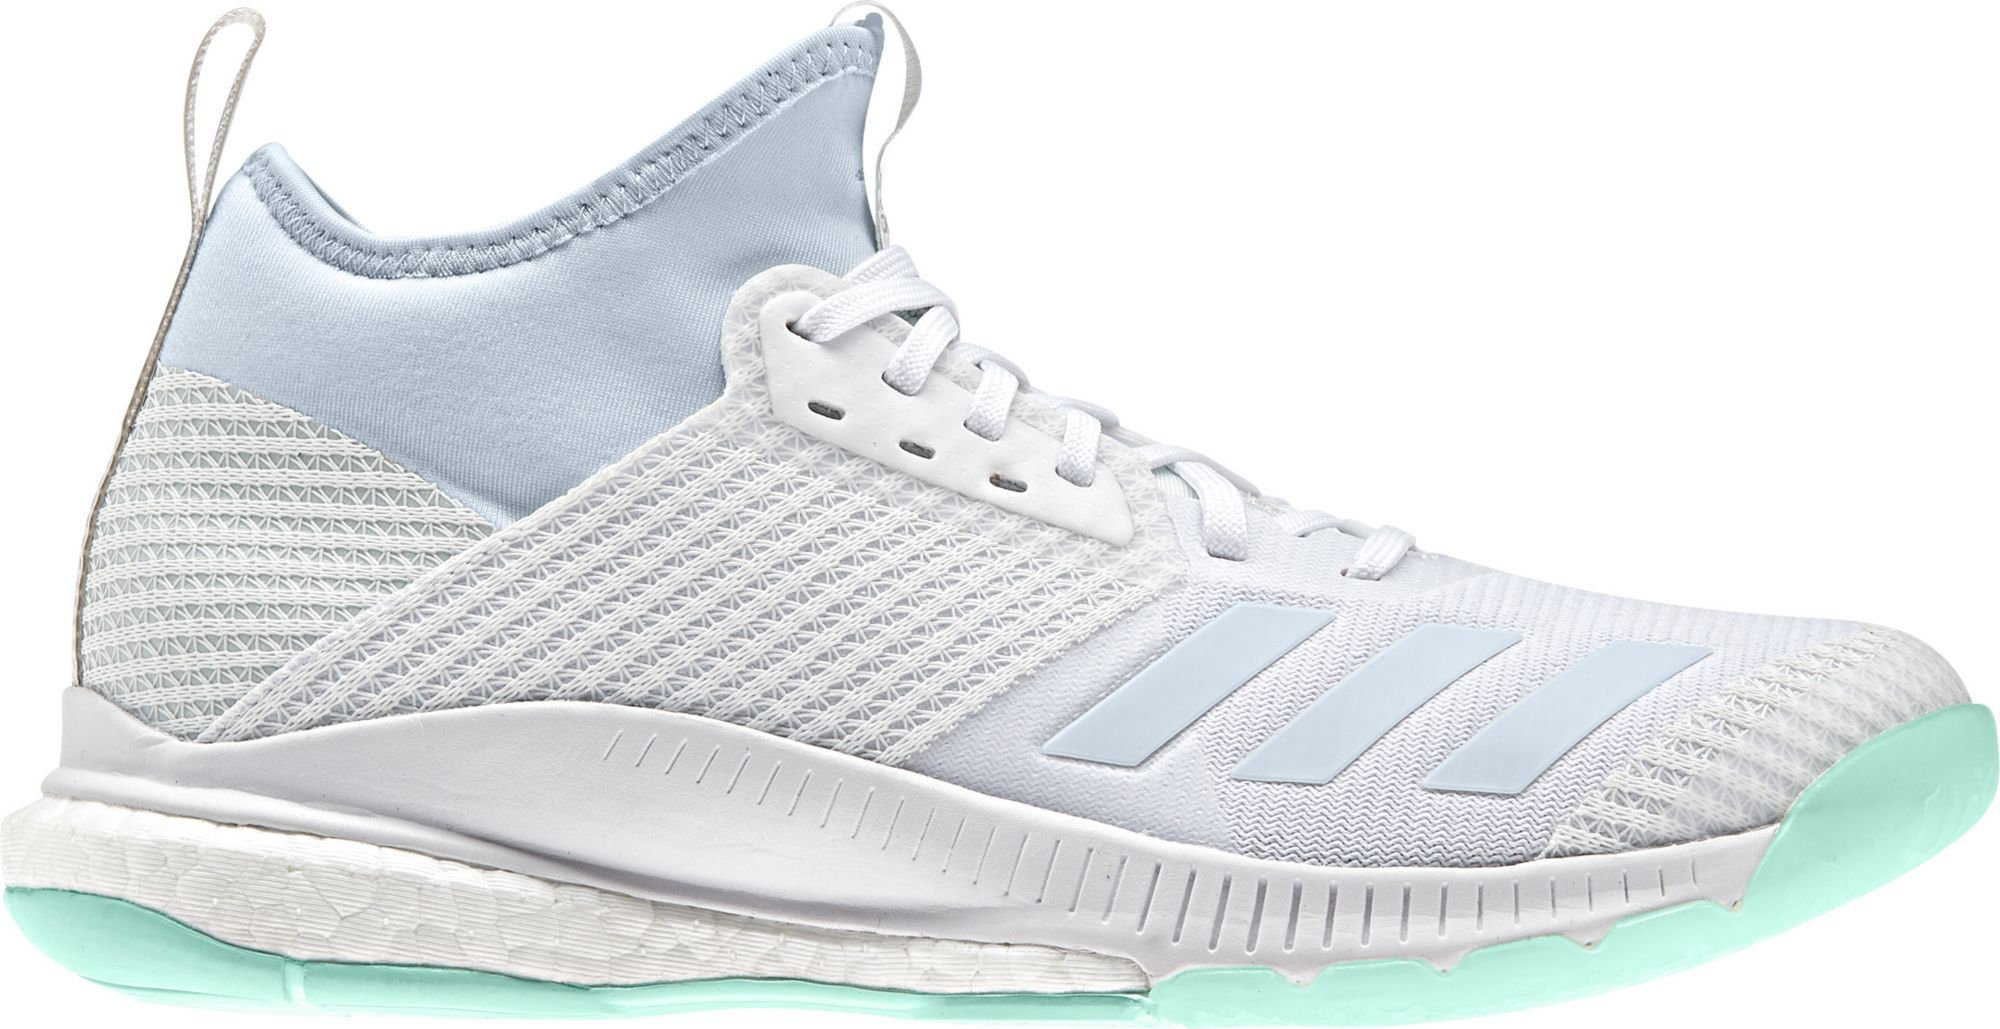 Adidas Women S Crazyflight X Mid Volleyball Shoes Size 5 5 White In 2020 Volleyball Shoes Girls Basketball Shoes Girls Shoes